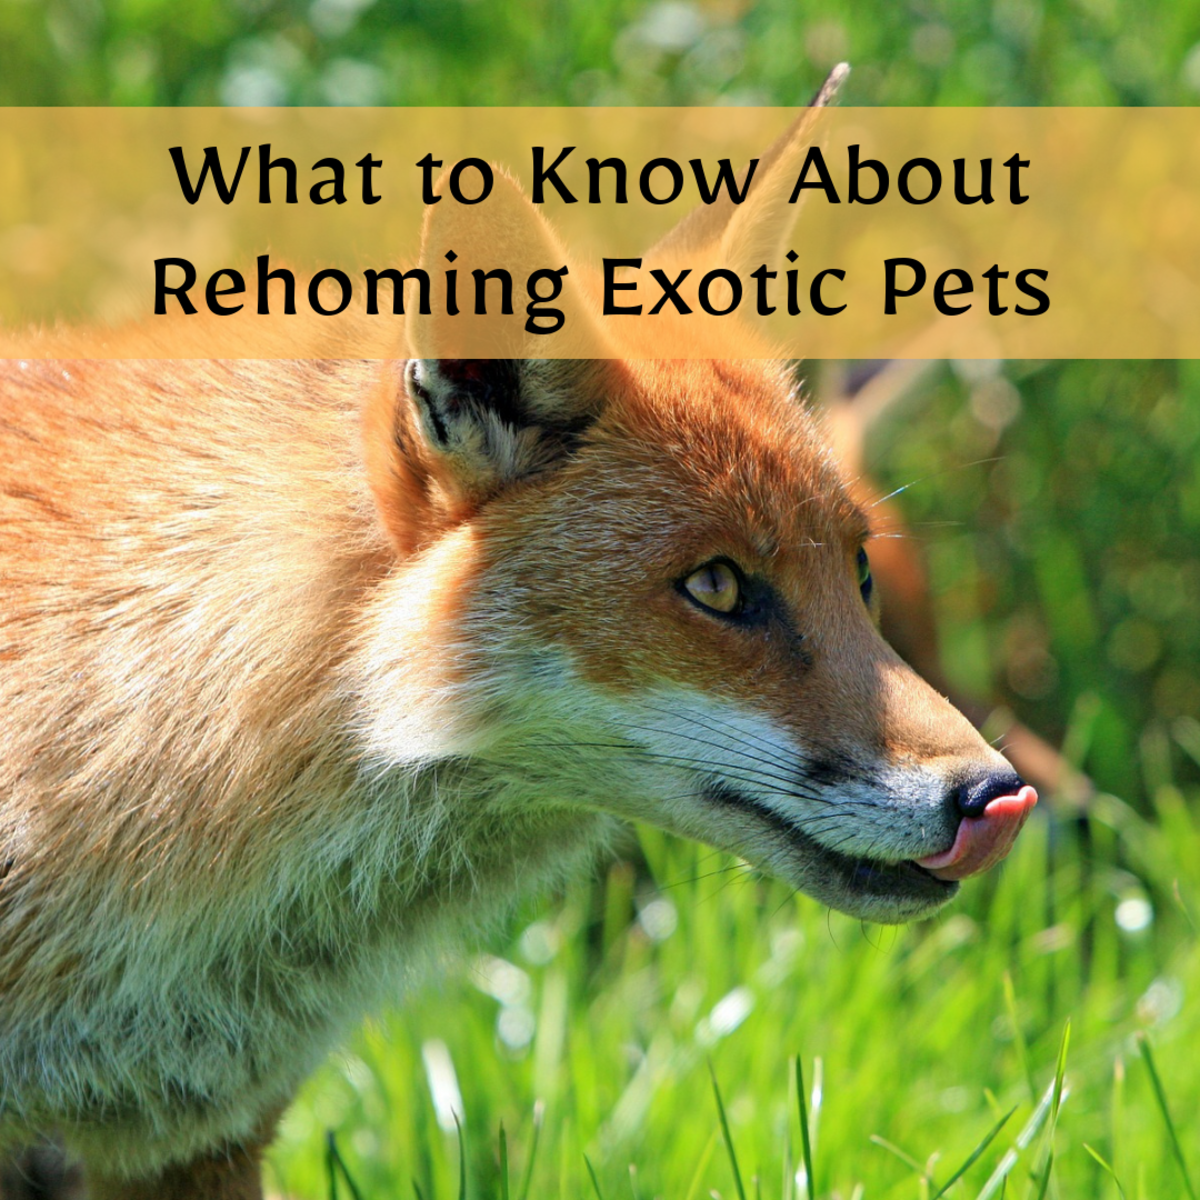 Rehoming and Adopting Exotic Pets: What You Should Consider